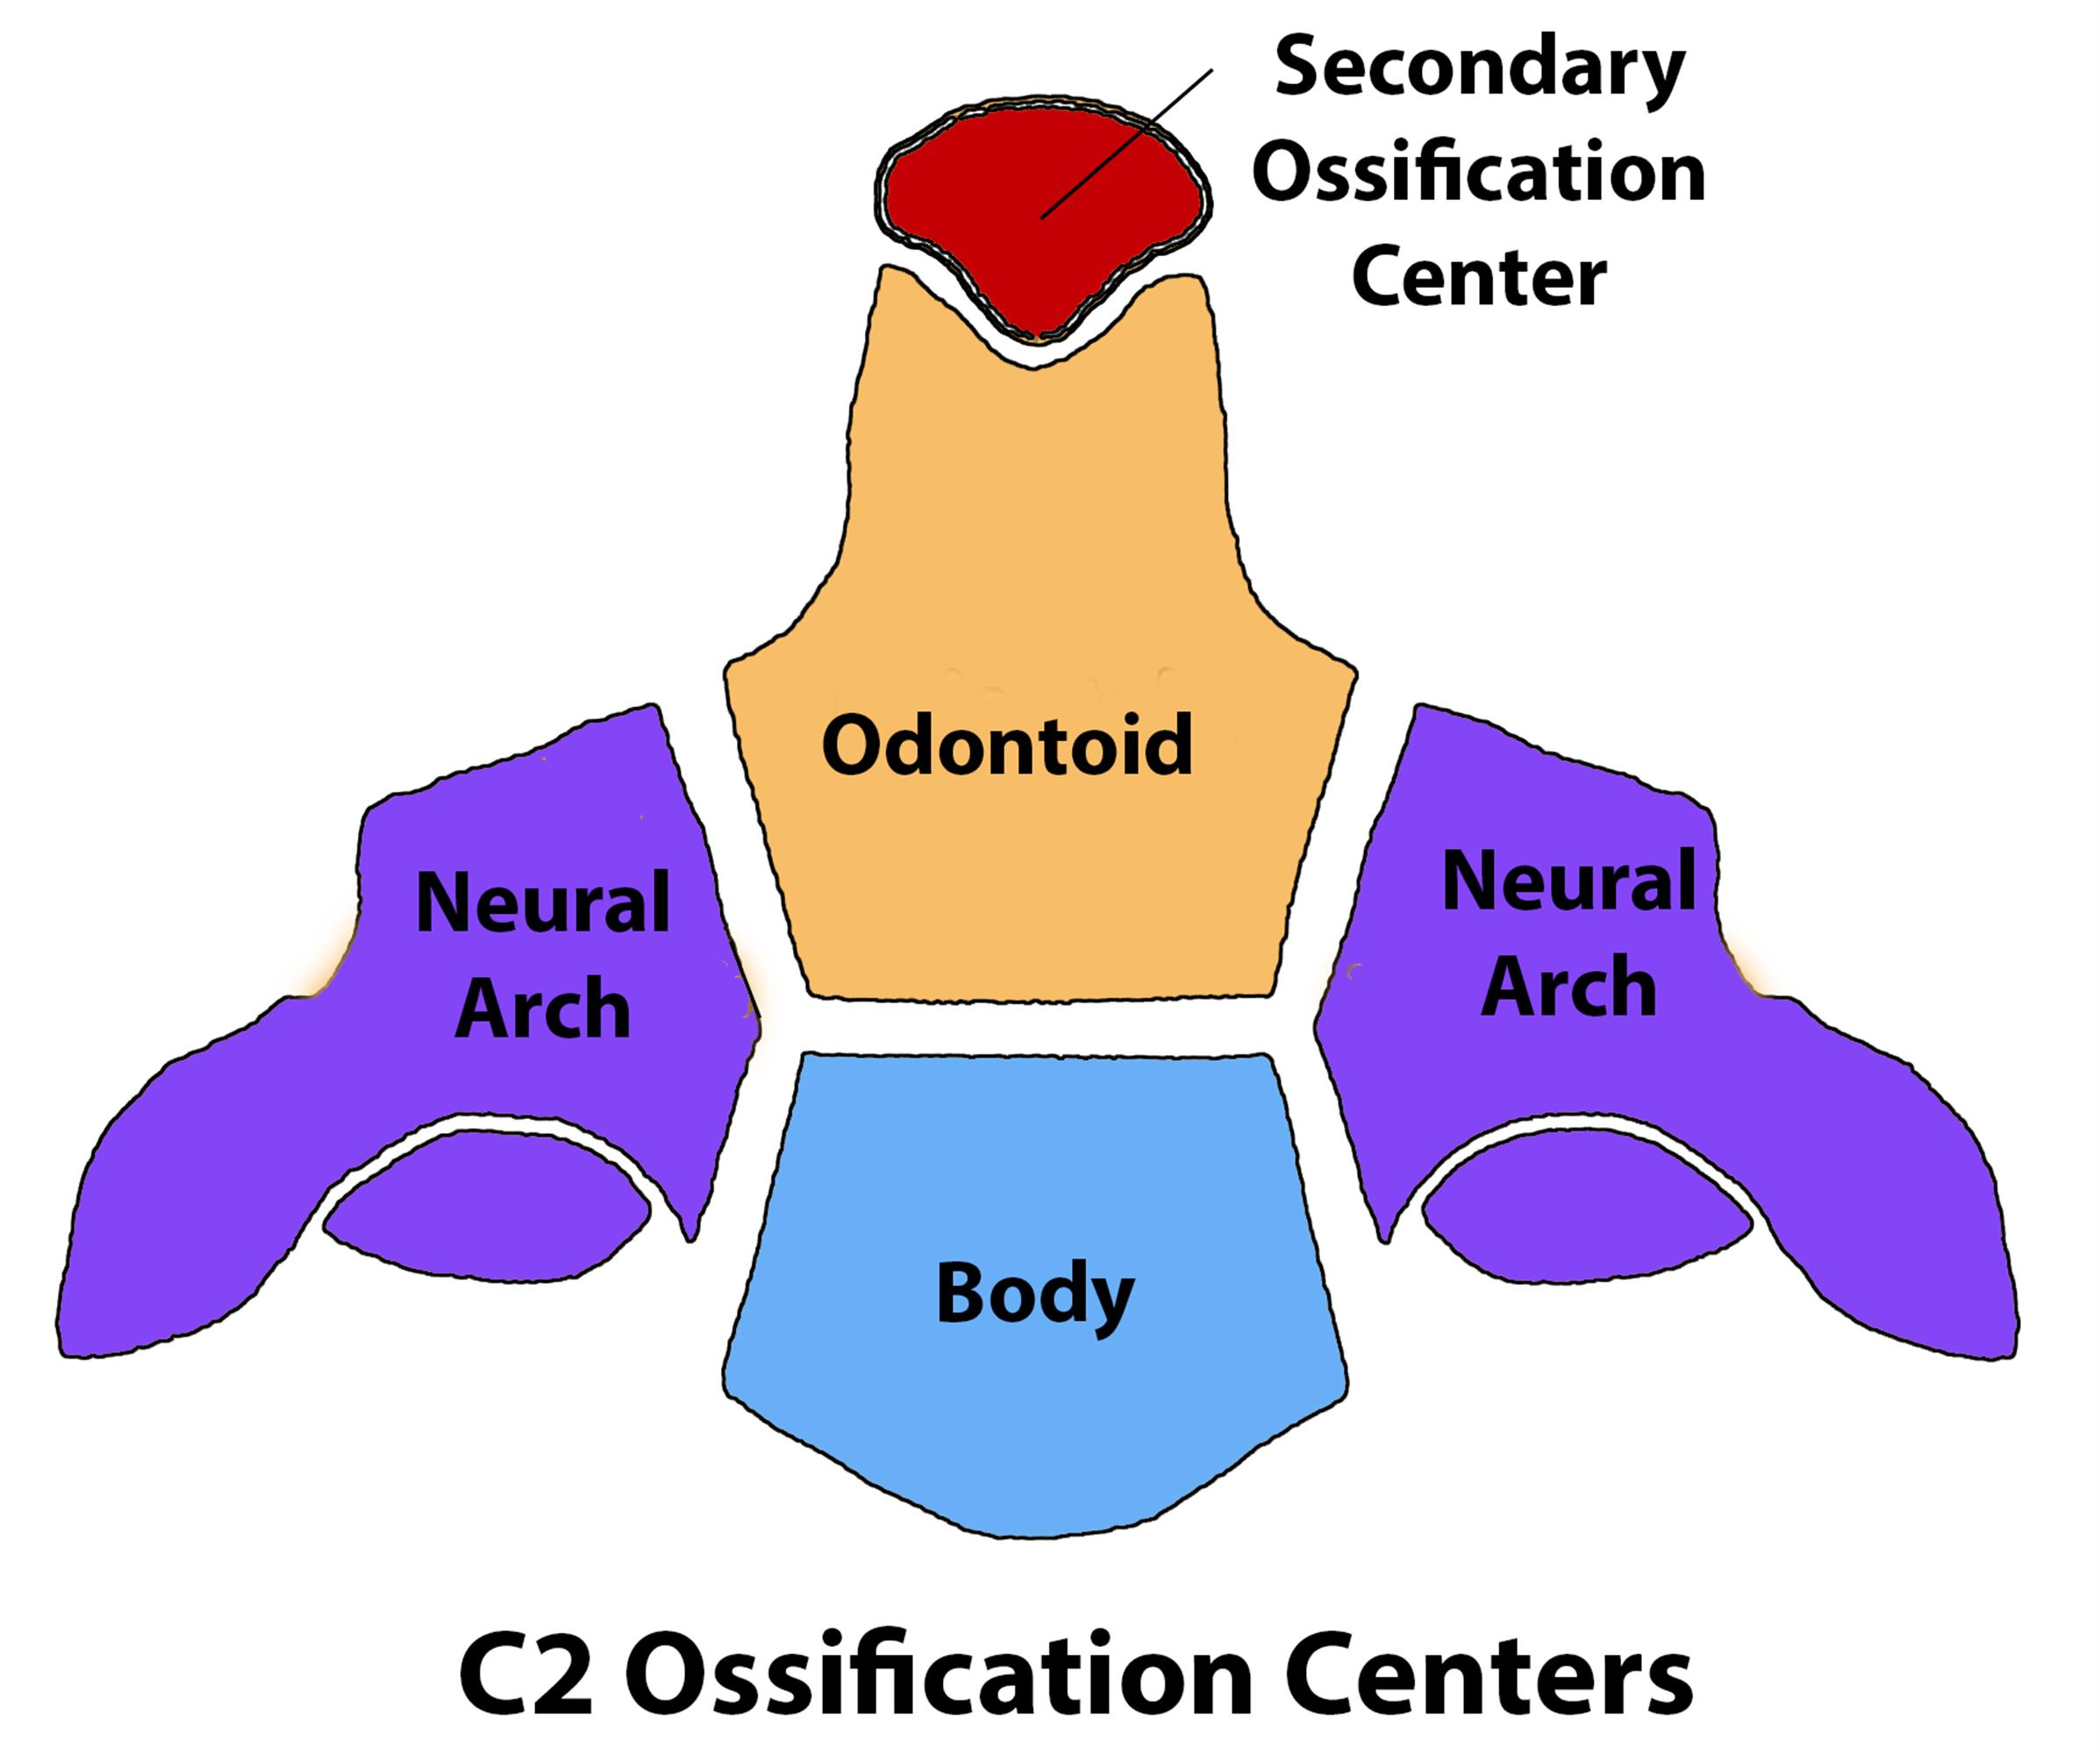 http://upload.orthobullets.com/topic/2069/images/ossification center c2_moved.jpg